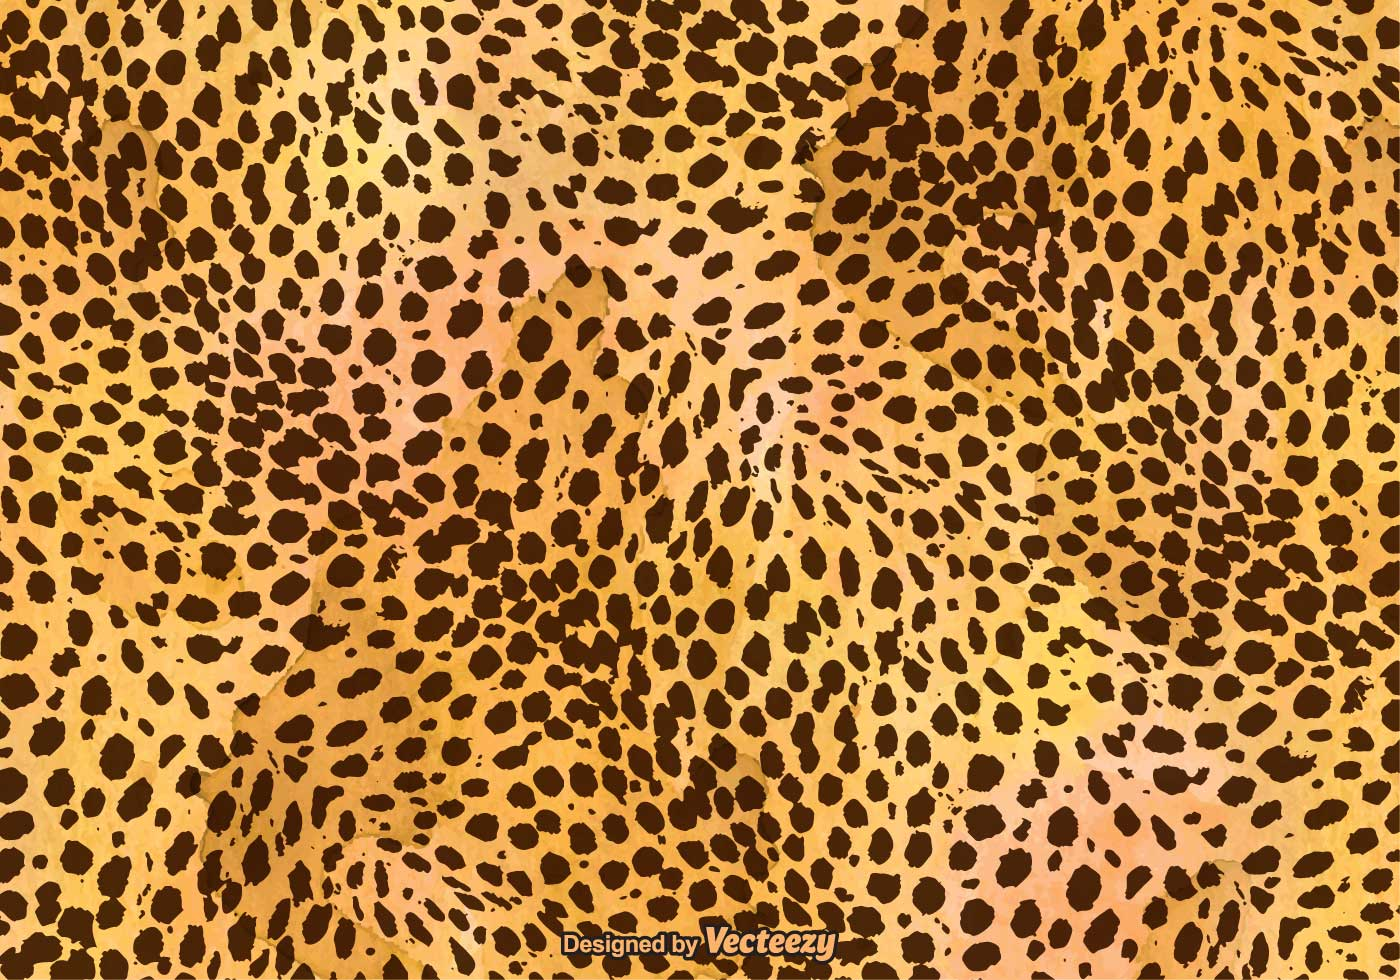 Free Vector Leopard Print Background - Download Free ...